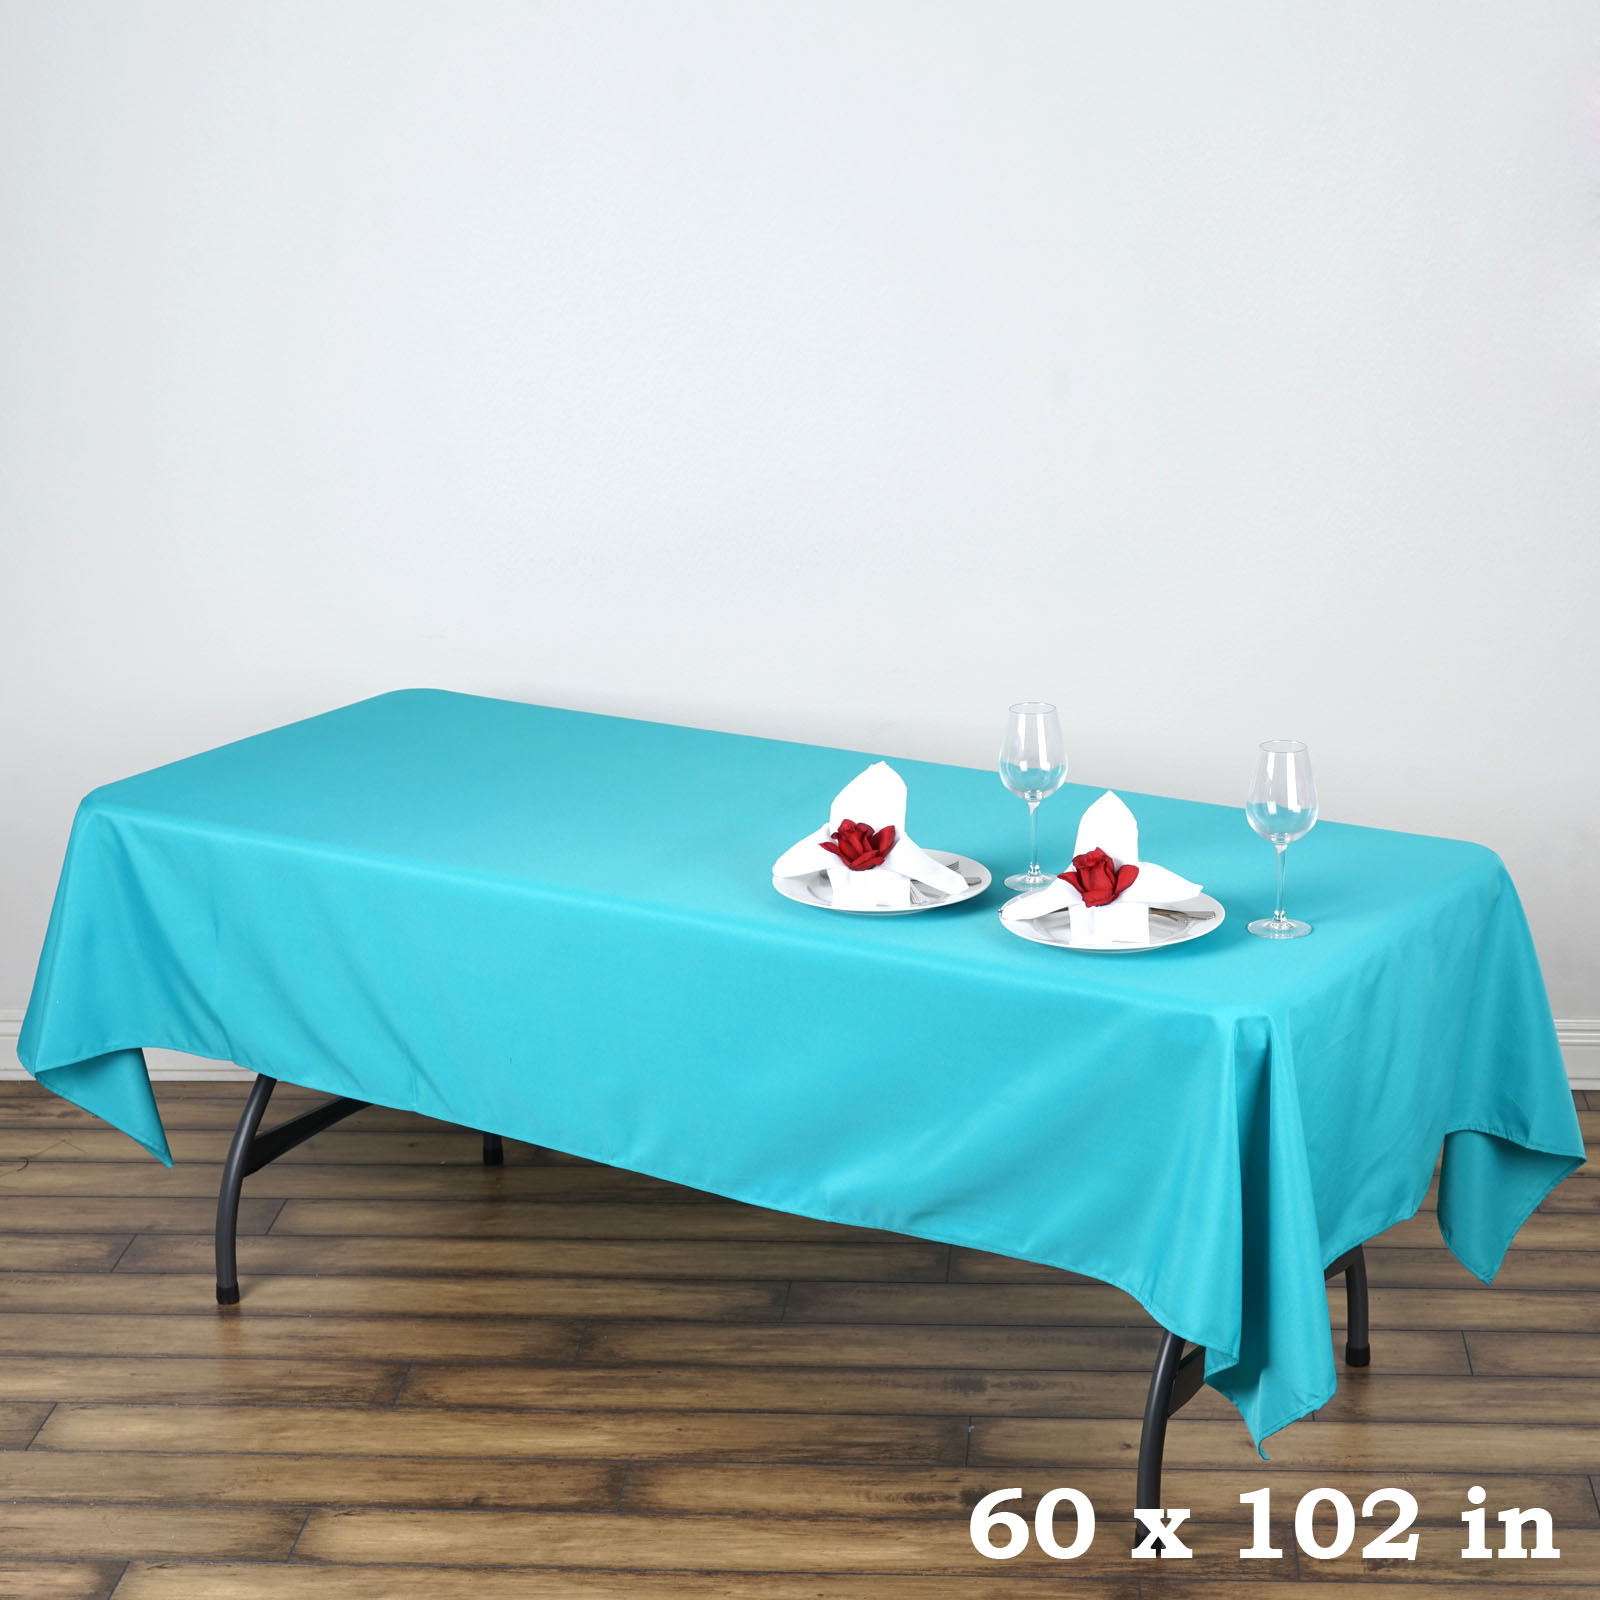 TURQUOISE 60x126 RECTANGLE POLYESTER TABLECLOTH Wedding Catering Kitchen Dinner